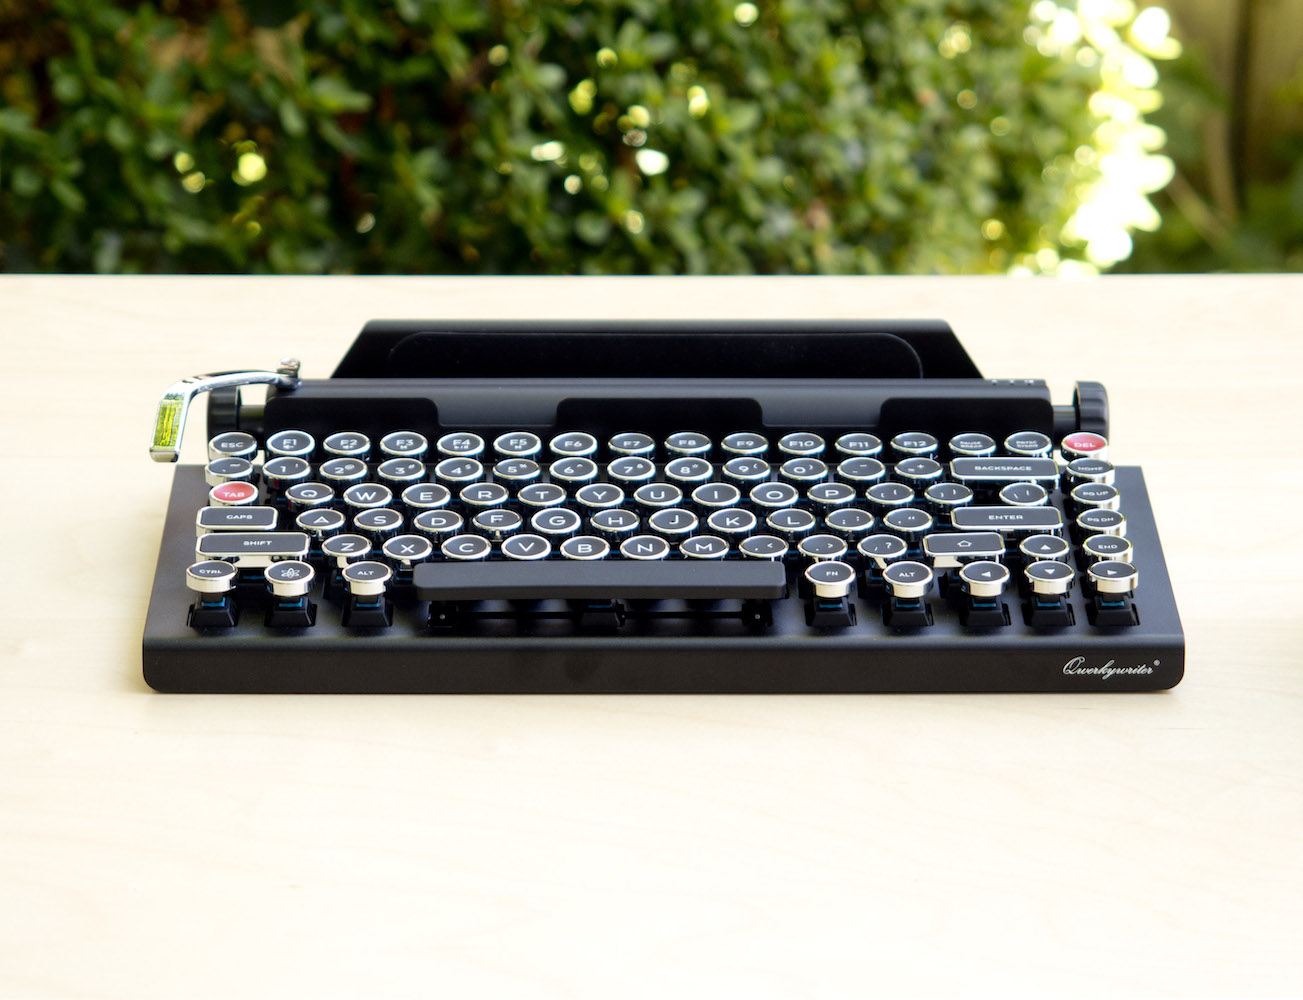 The+Qwerkywriter+Bluetooth+Keyboard